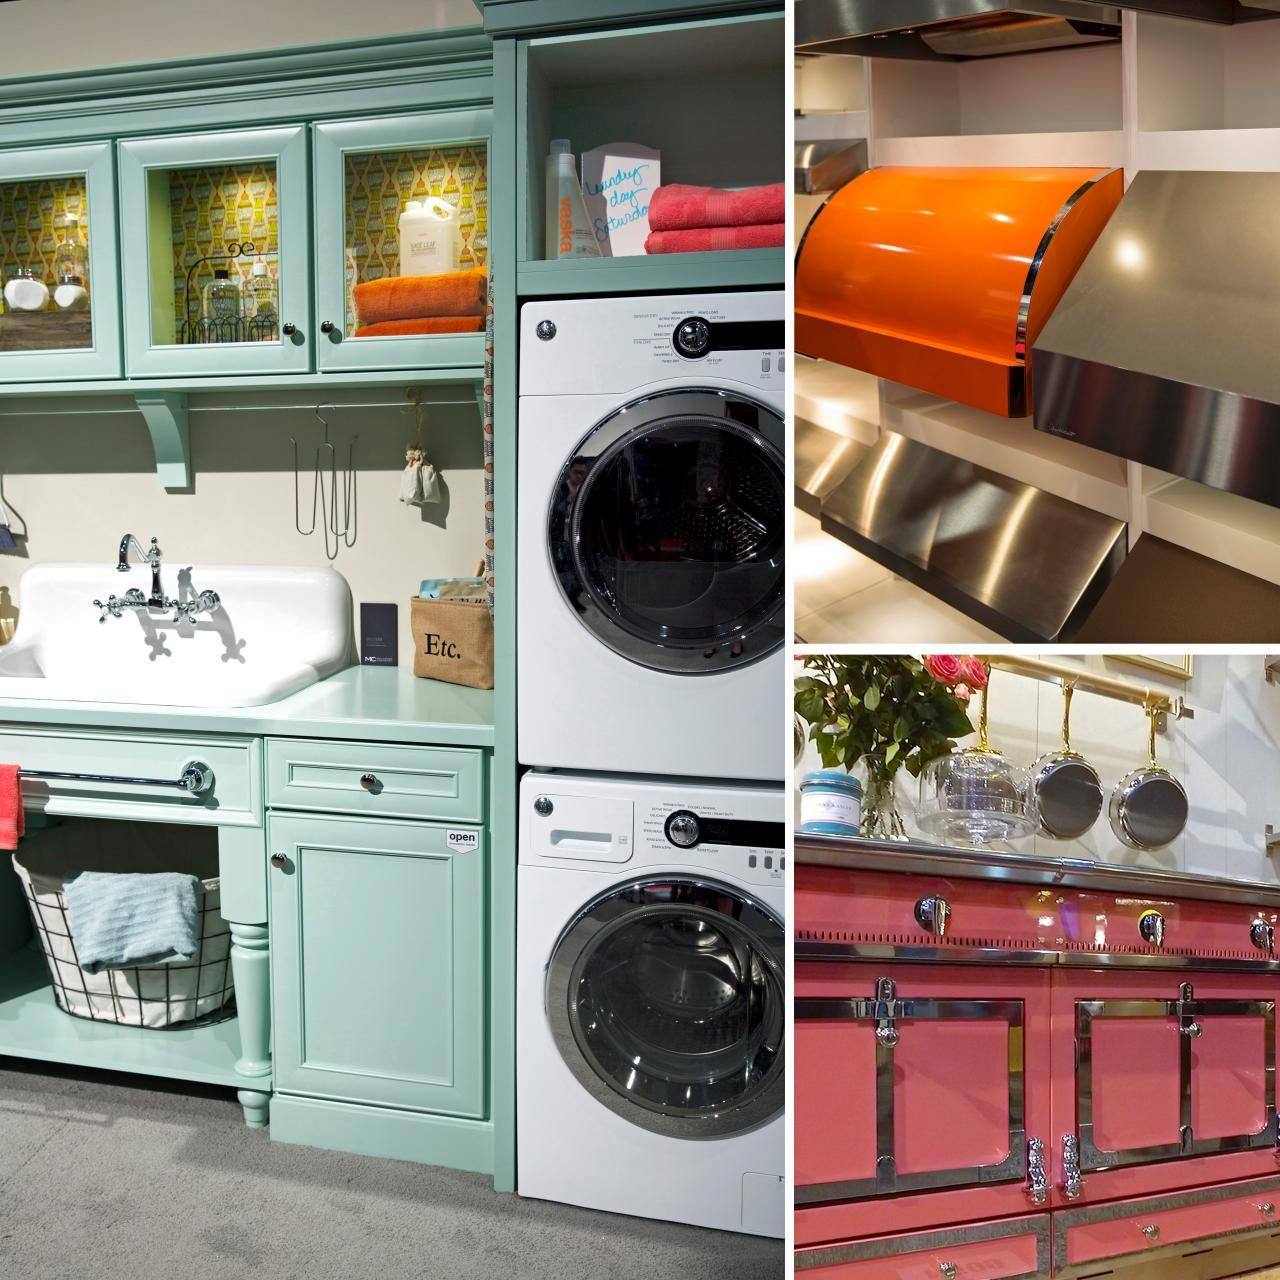 Chip Wade's Favorite Trends From The 2016 Kitchen and Bath Trade Show